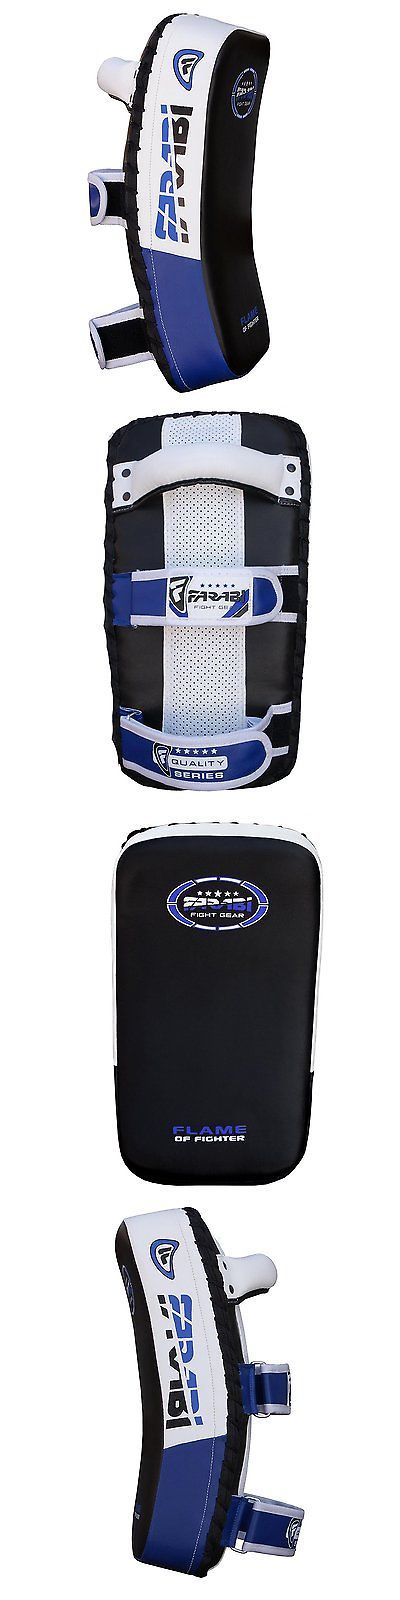 Strike Pads and Mitts 179789: Thai Pad, Kickboxing Kick Pad, Kick Training Strike Shield Mma Muay Thai Pad BUY IT NOW ONLY: $36.23